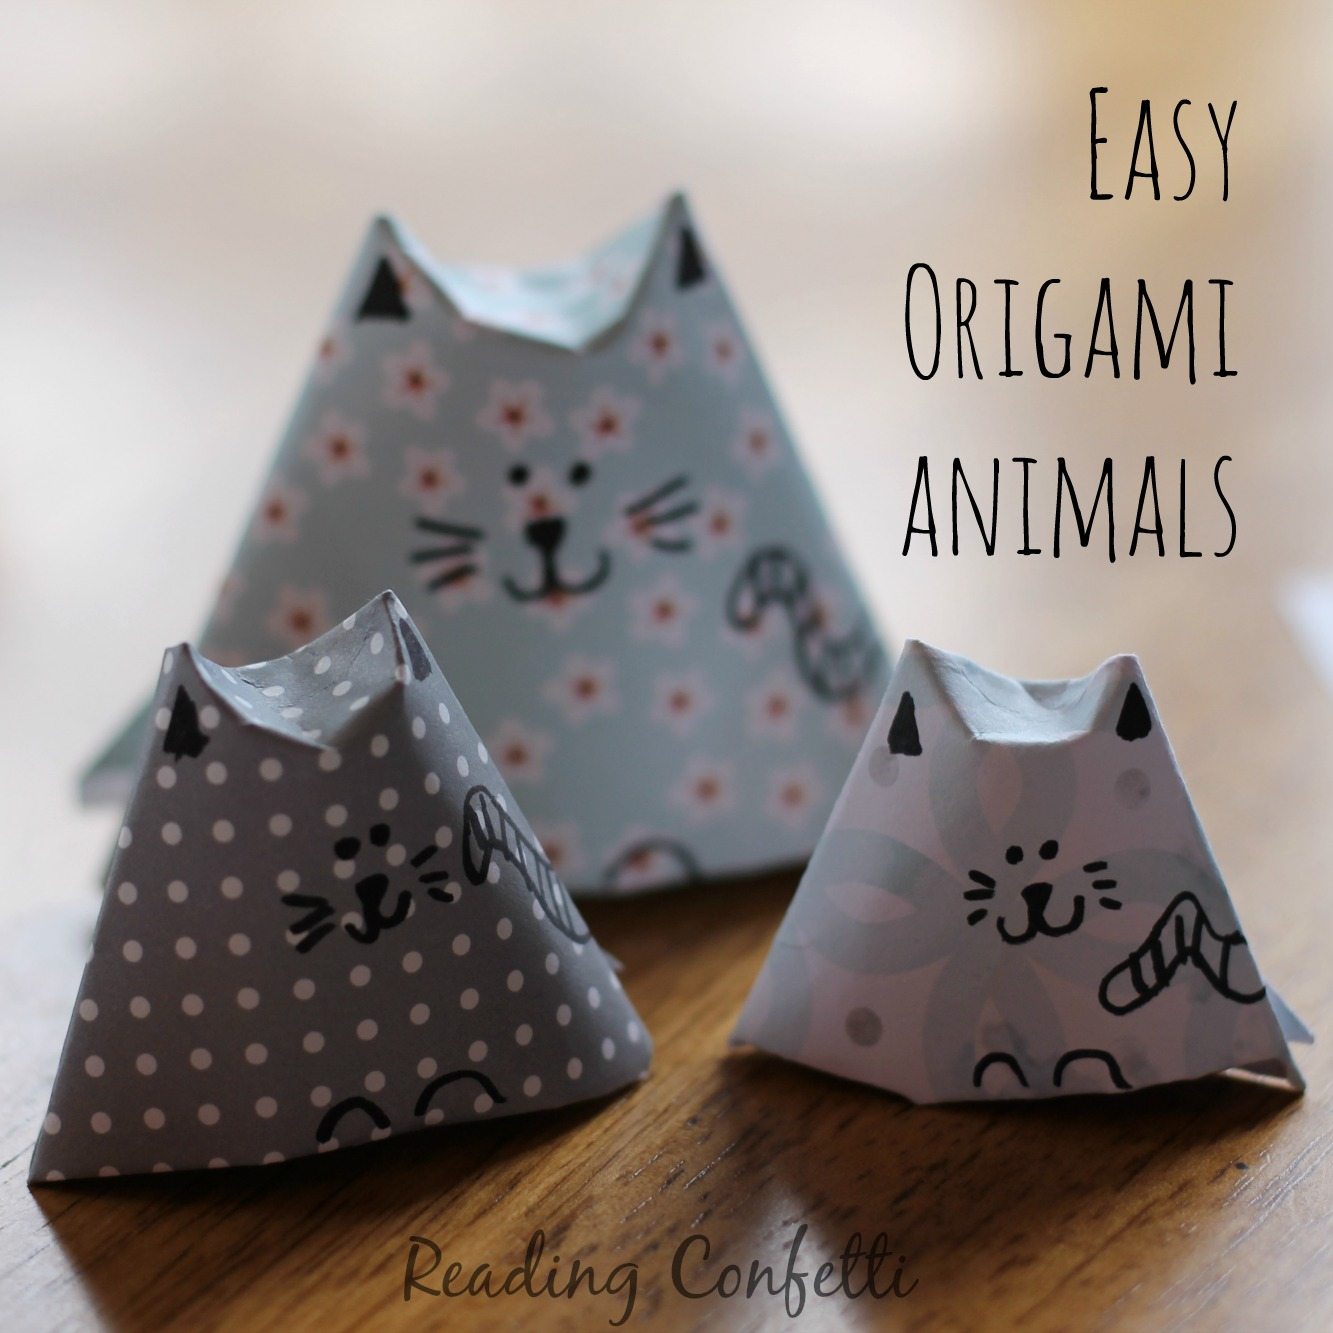 Easy Origami Animals ~ Reading Confetti - photo#15